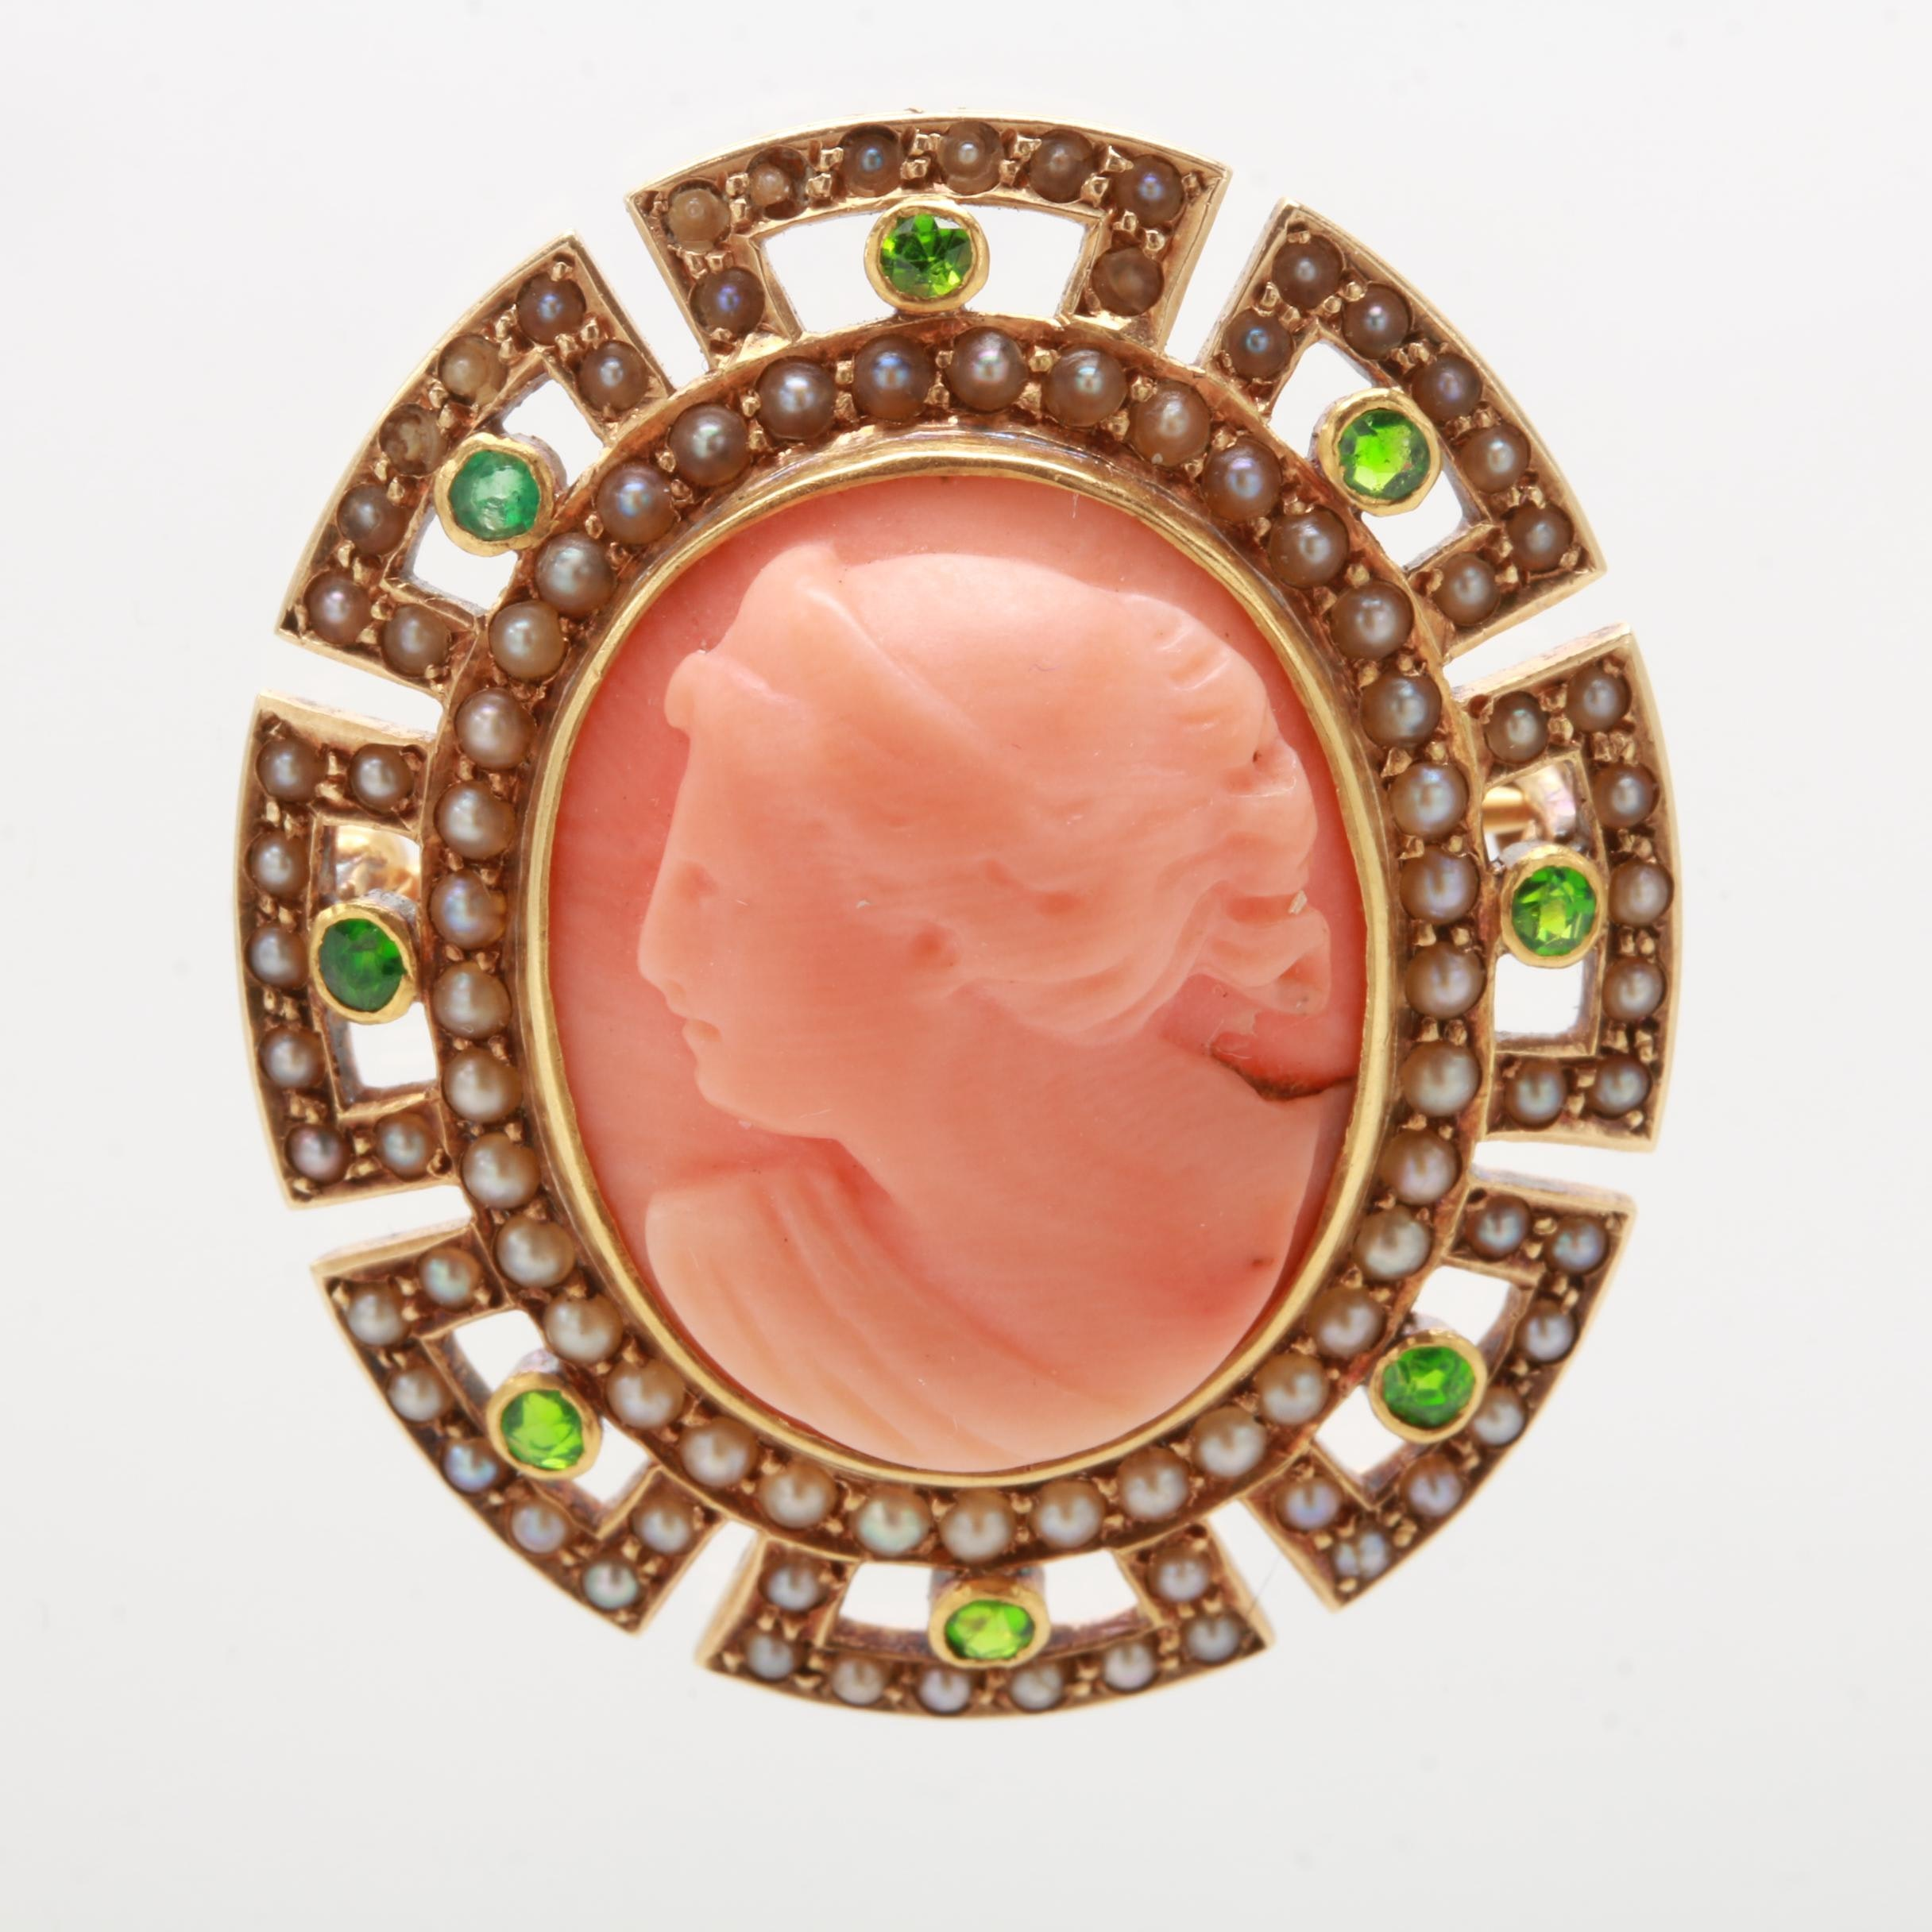 14K Yellow Gold Coral, Tsavorite Garnet, Emerald, and Cultured Pearl Brooch